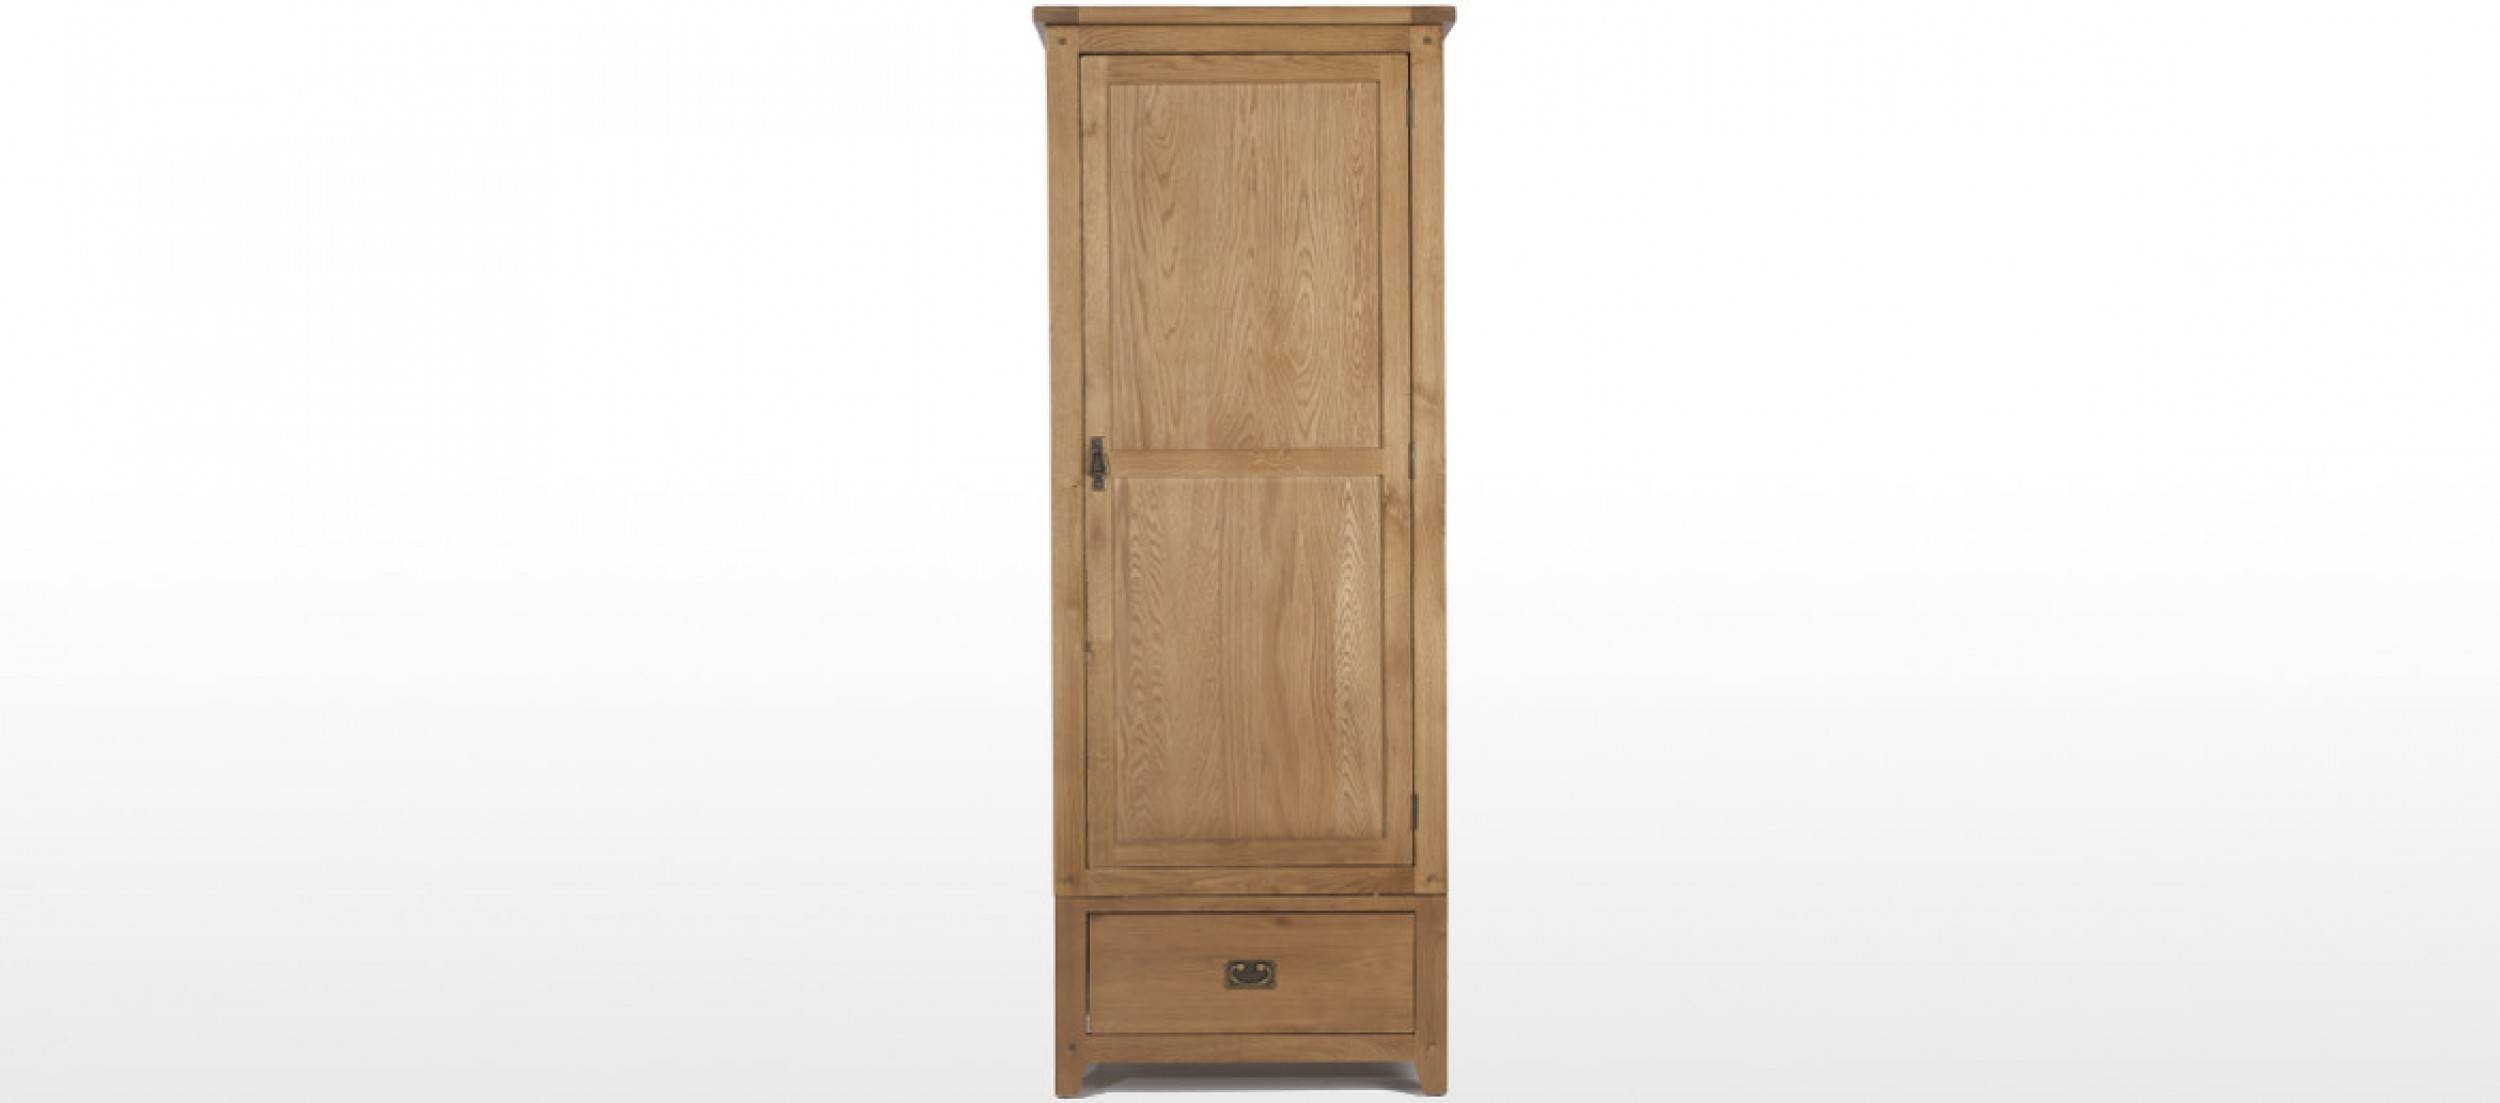 Rustic Oak Single Wardrobe | Quercus Living With Single Oak Wardrobes With Drawers (View 14 of 15)